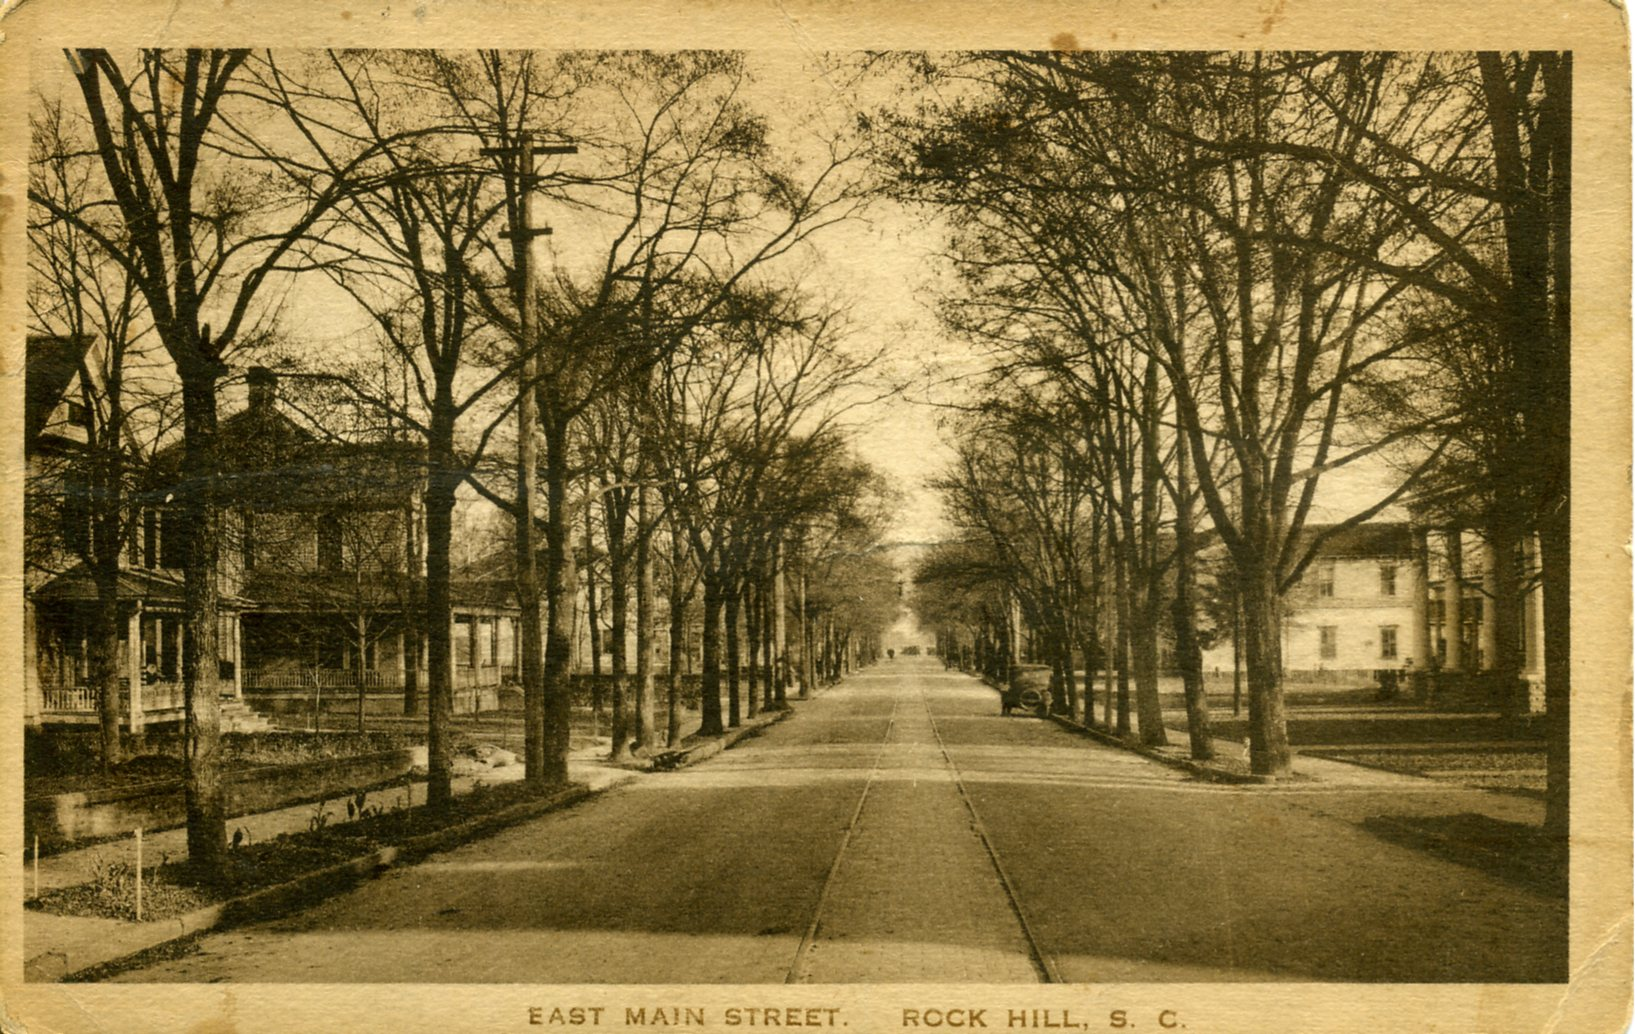 Postcard view of East Main Street in ca. 1910